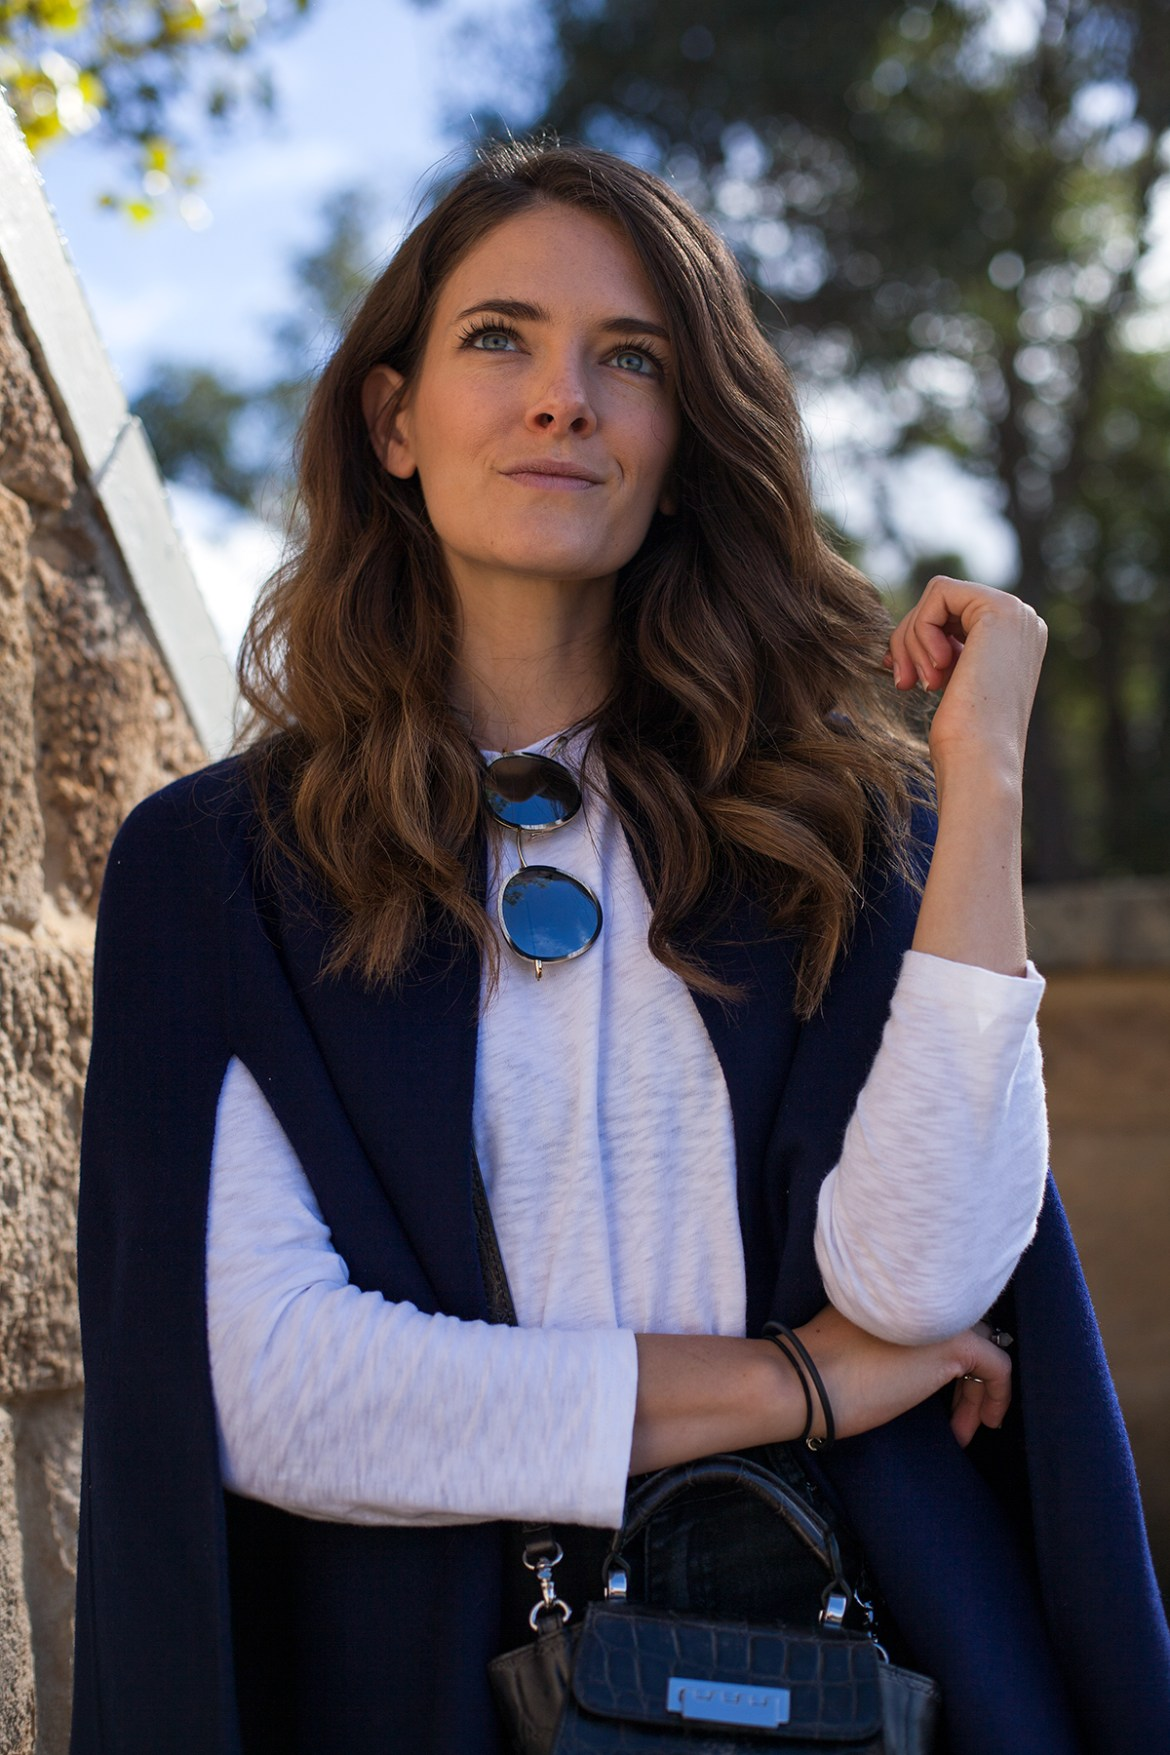 Sussan navy wool cape worn by Australian fashion blogger Jenelle of Inspiring Wit